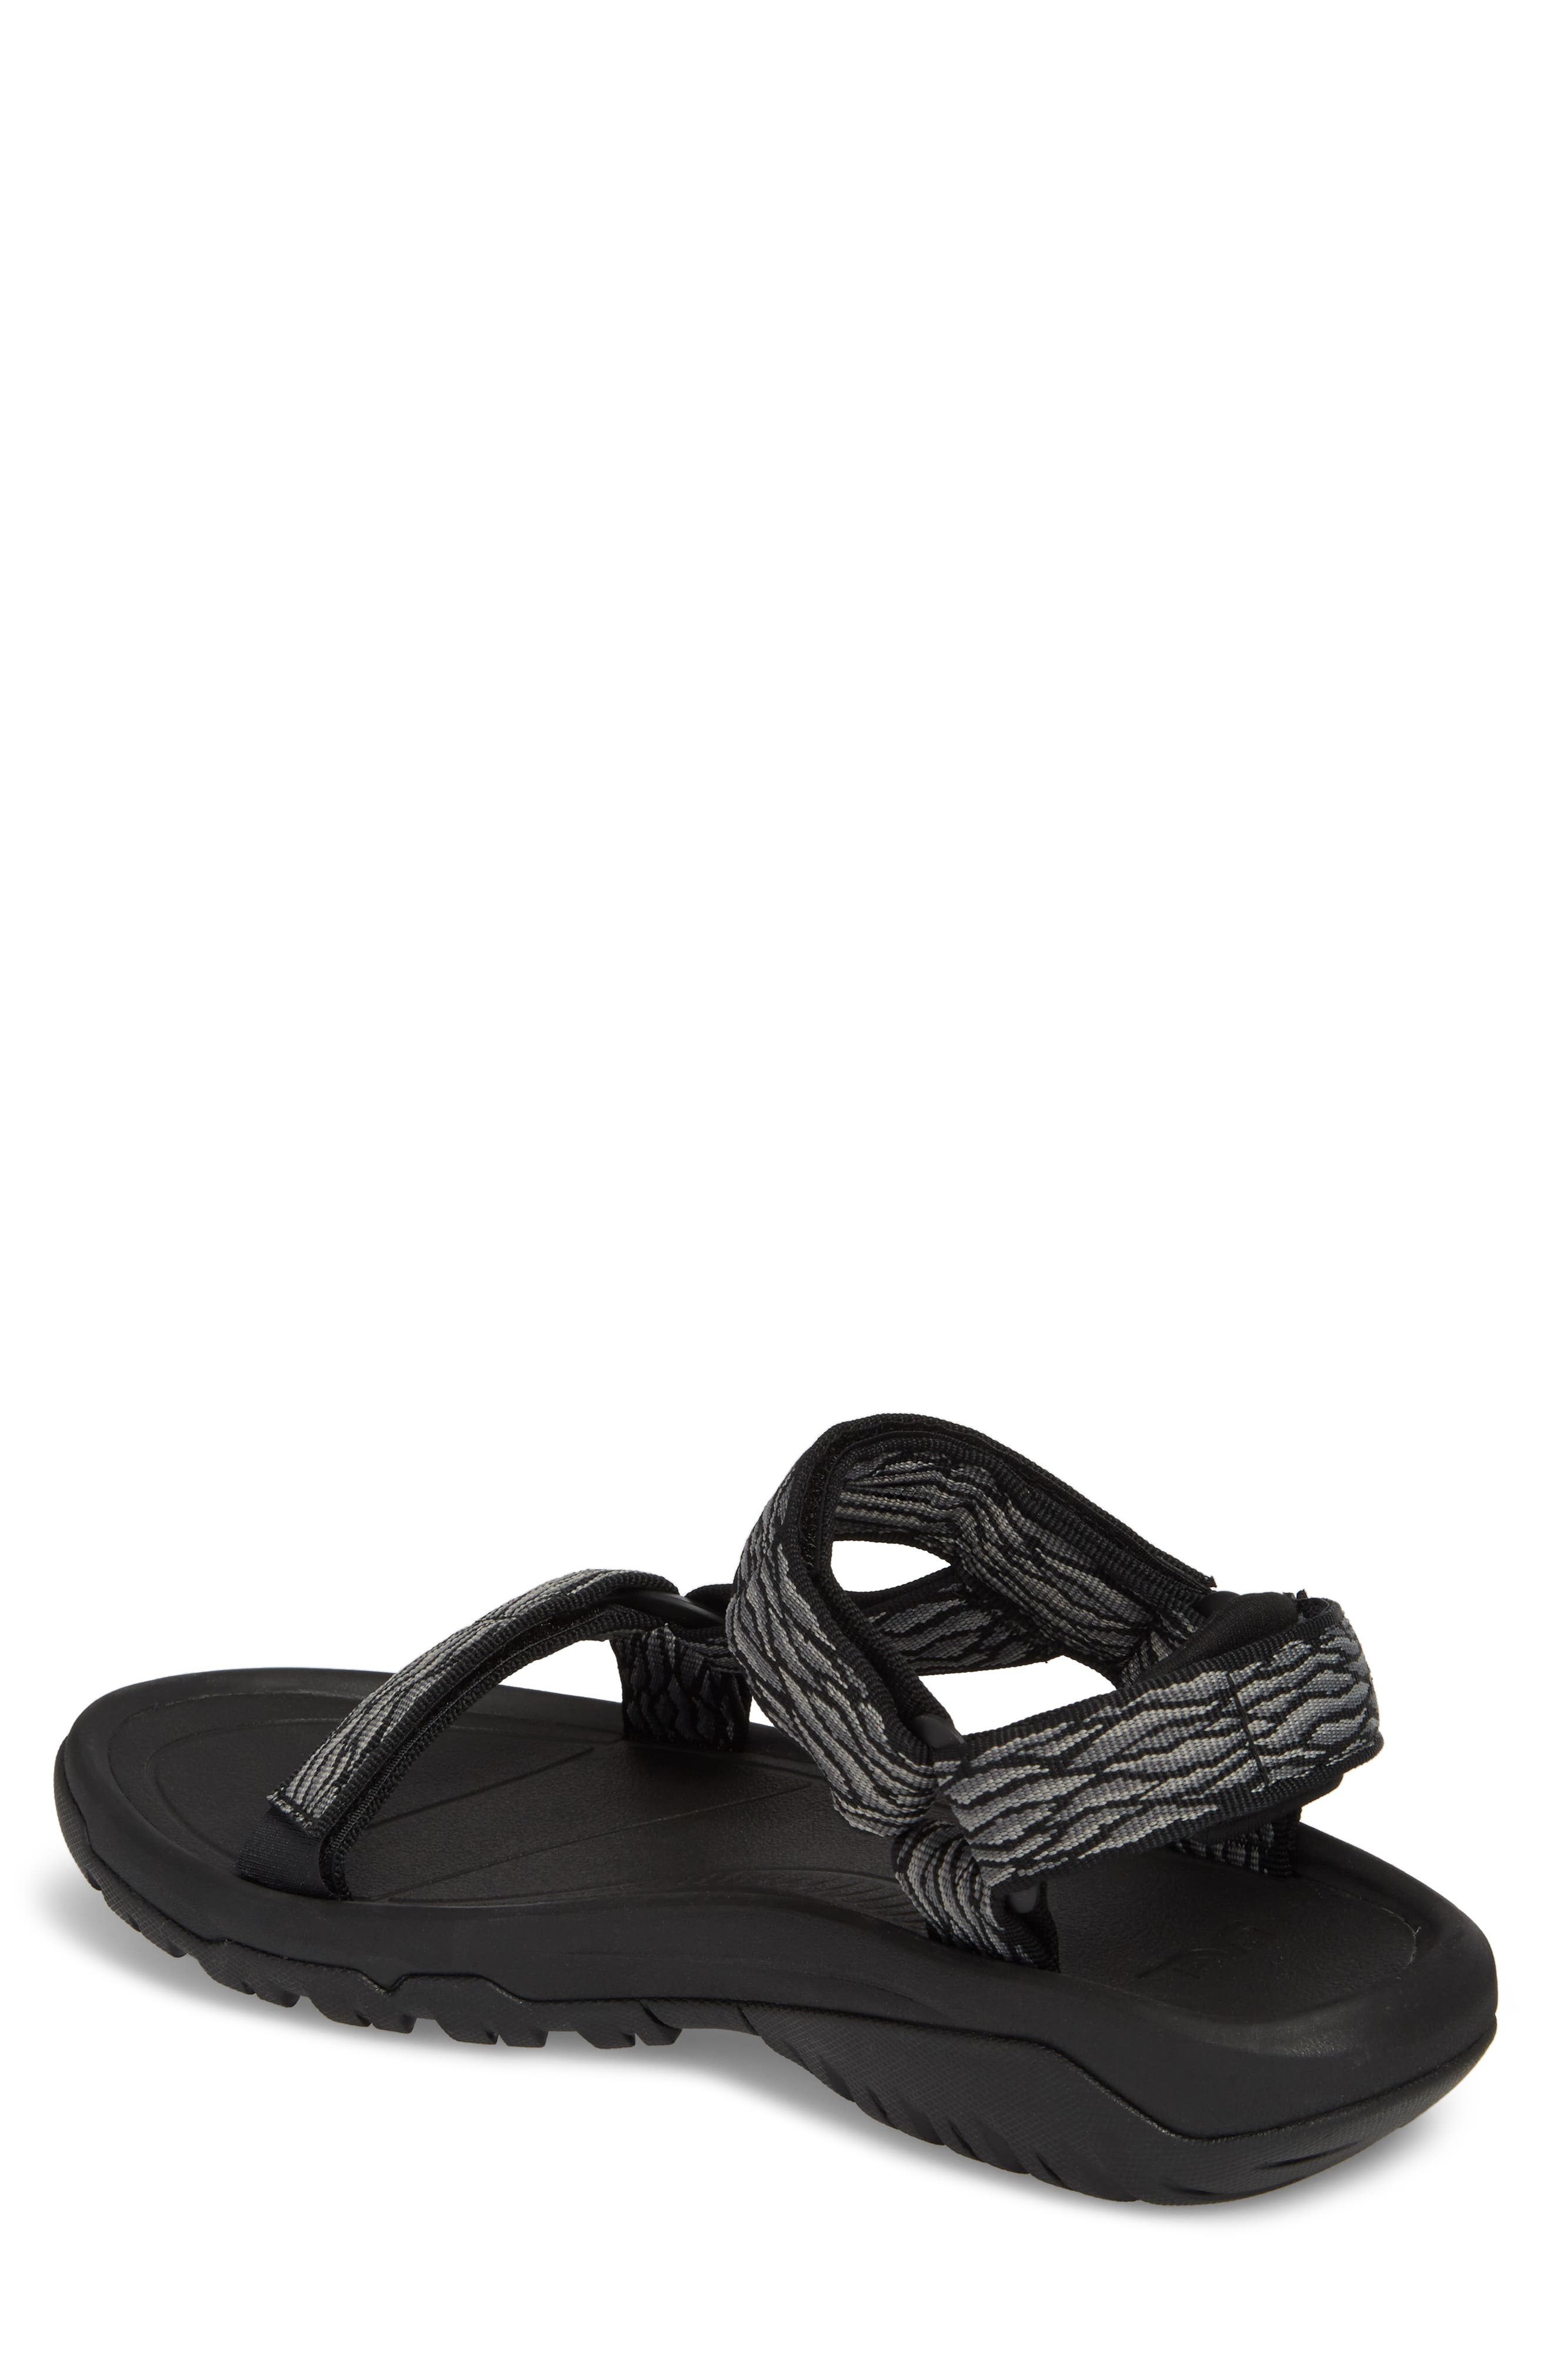 Hurricane XLT 2 Sandal,                             Alternate thumbnail 2, color,                             BLACK/ GREY NYLON